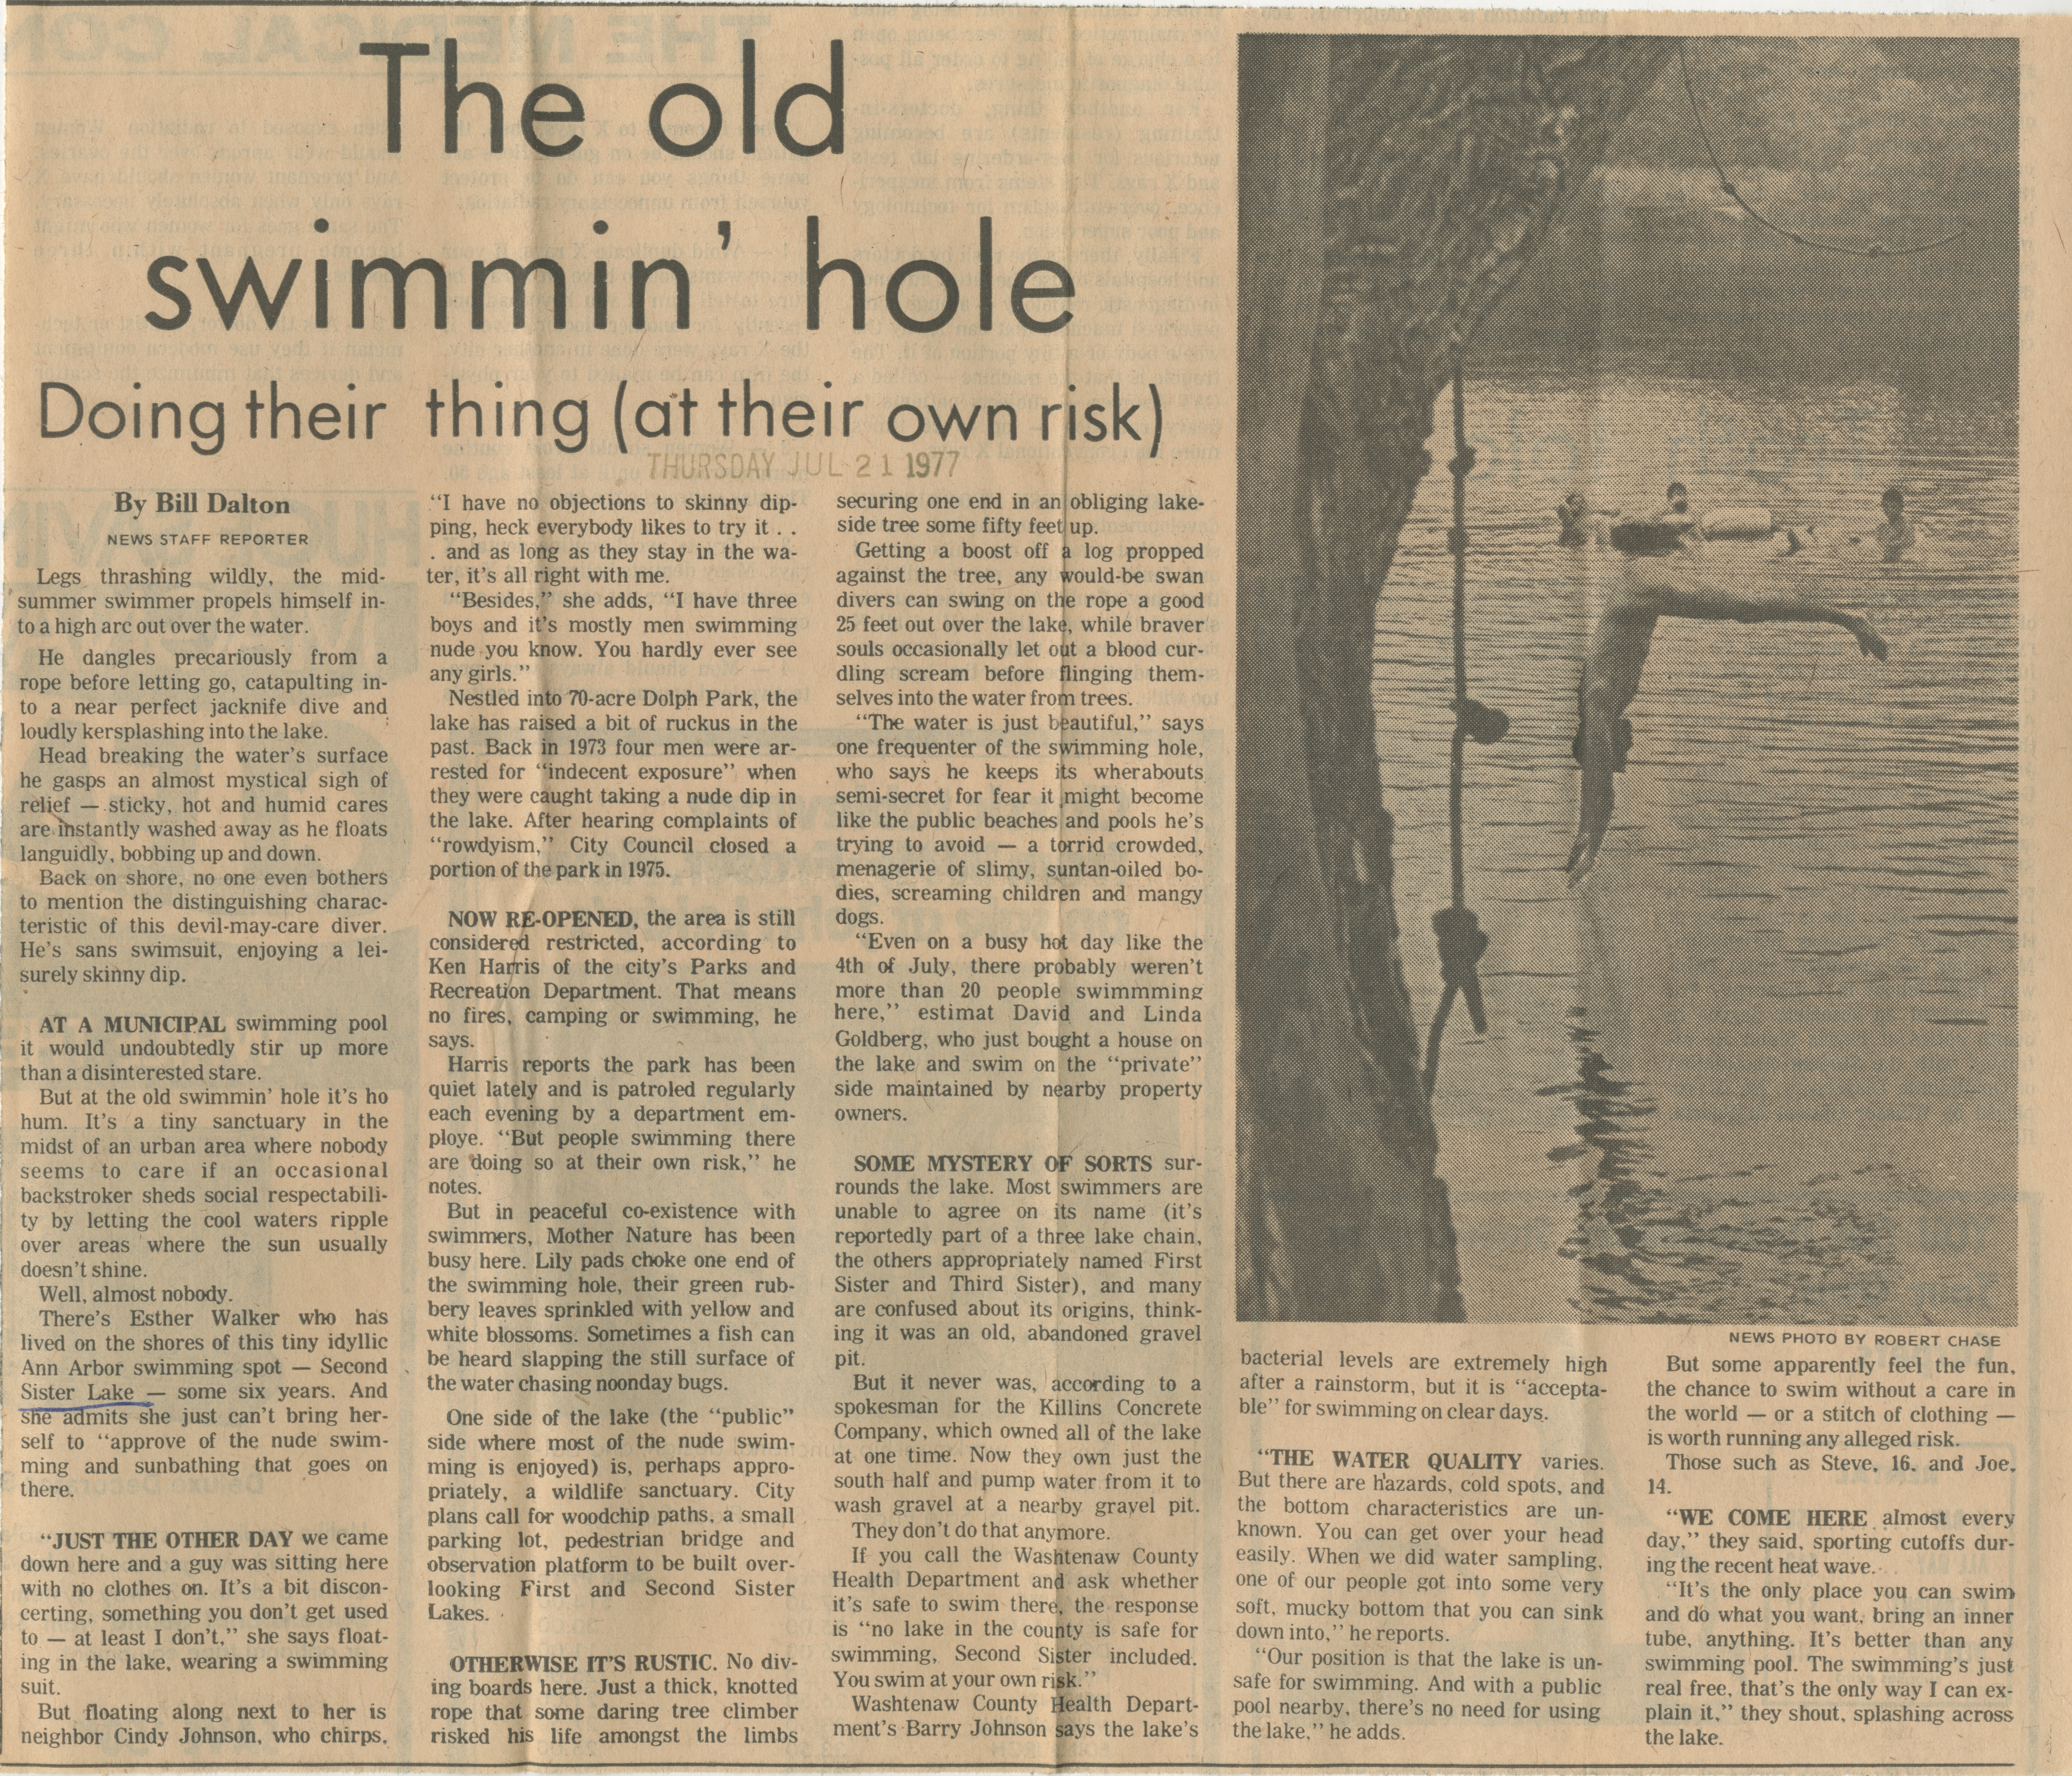 The old swimmin' hole image